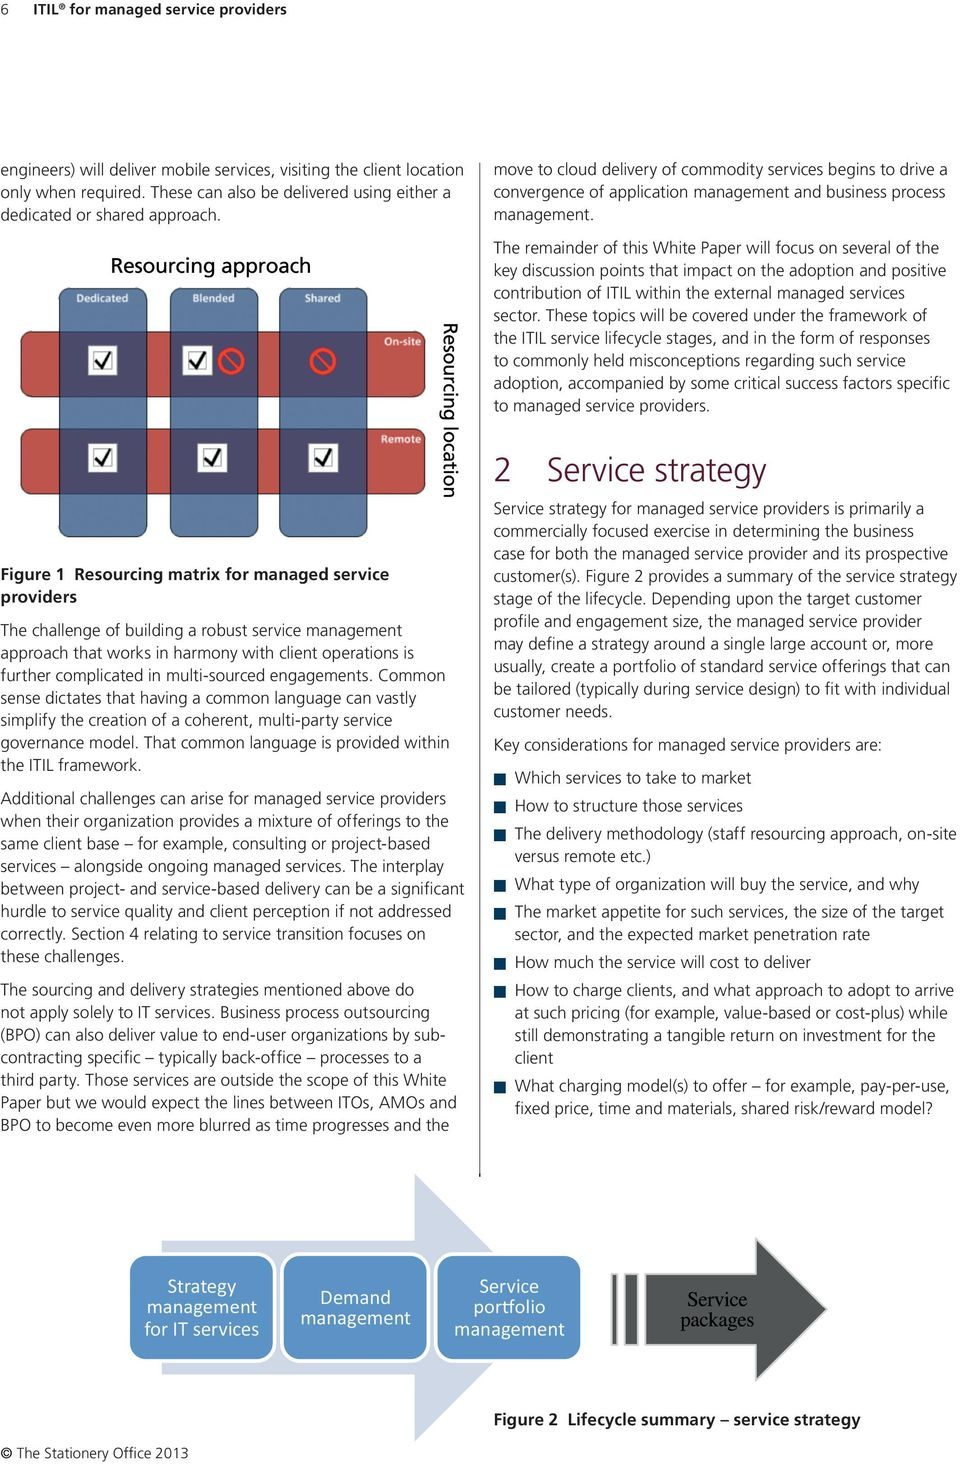 The remainder of this White Paper will focus on several of the key discussion points that impact on the adoption and positive contribution of ITIL within the external managed services sector.